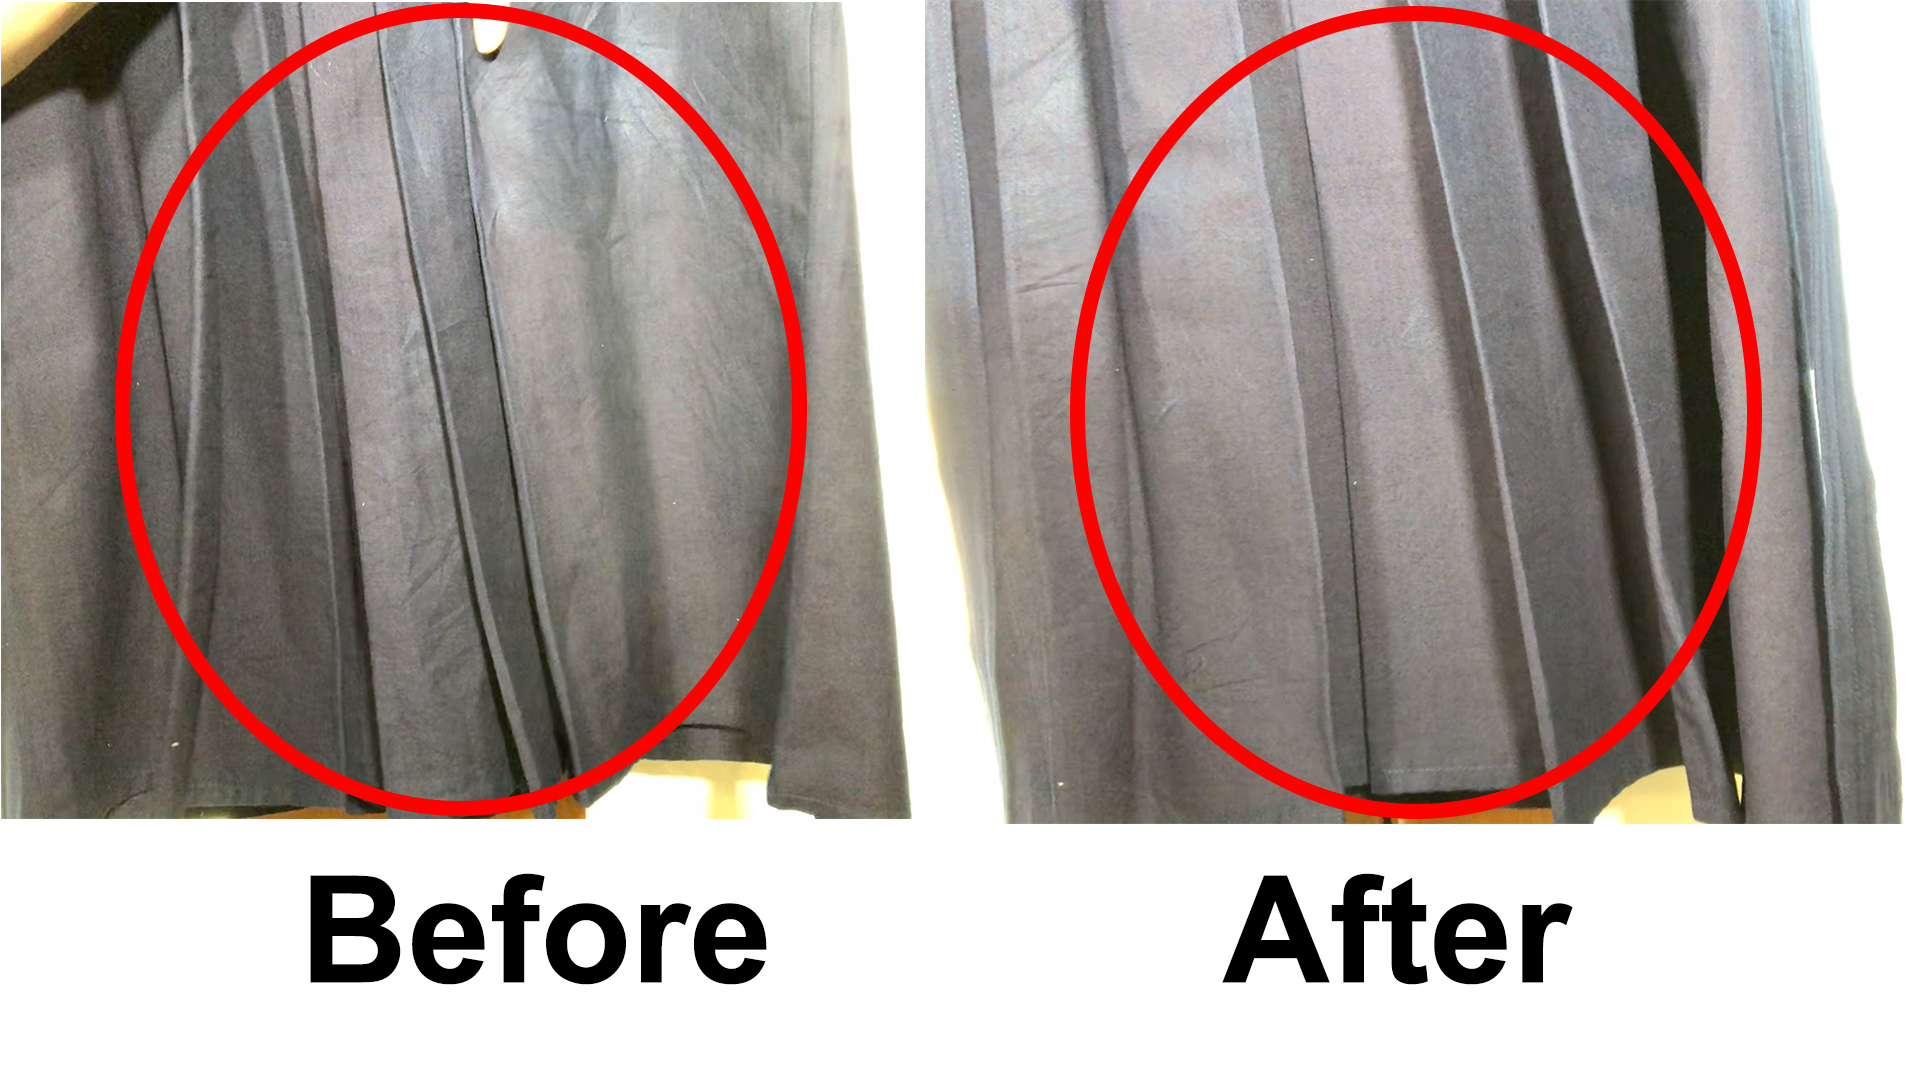 Remove wrinkles on hakama with iSteam Review: hakama before and after iSteam